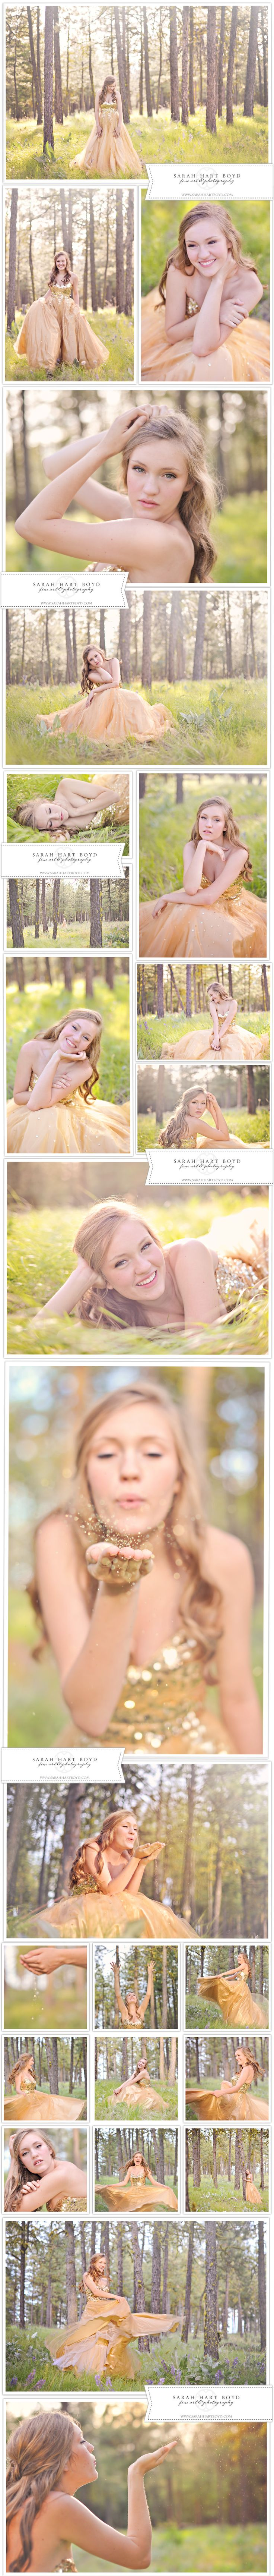 Maddie | Whimsical Dress Session | Chelan, WA Senior Photographer {posing great for bridal too}